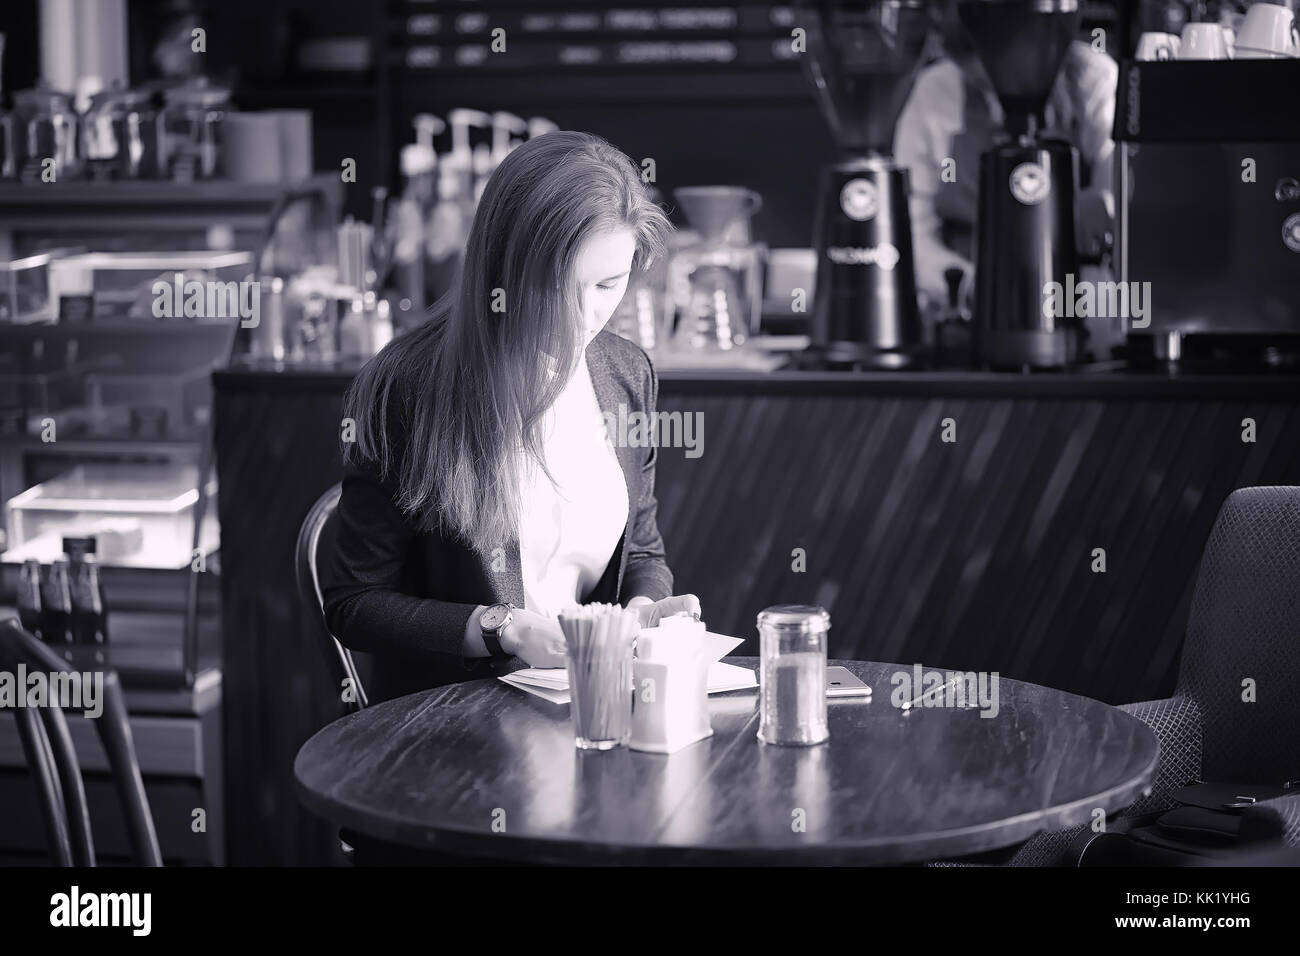 A girl in a cafe is drinking coffee. A woman is having breakfast Stock Photo